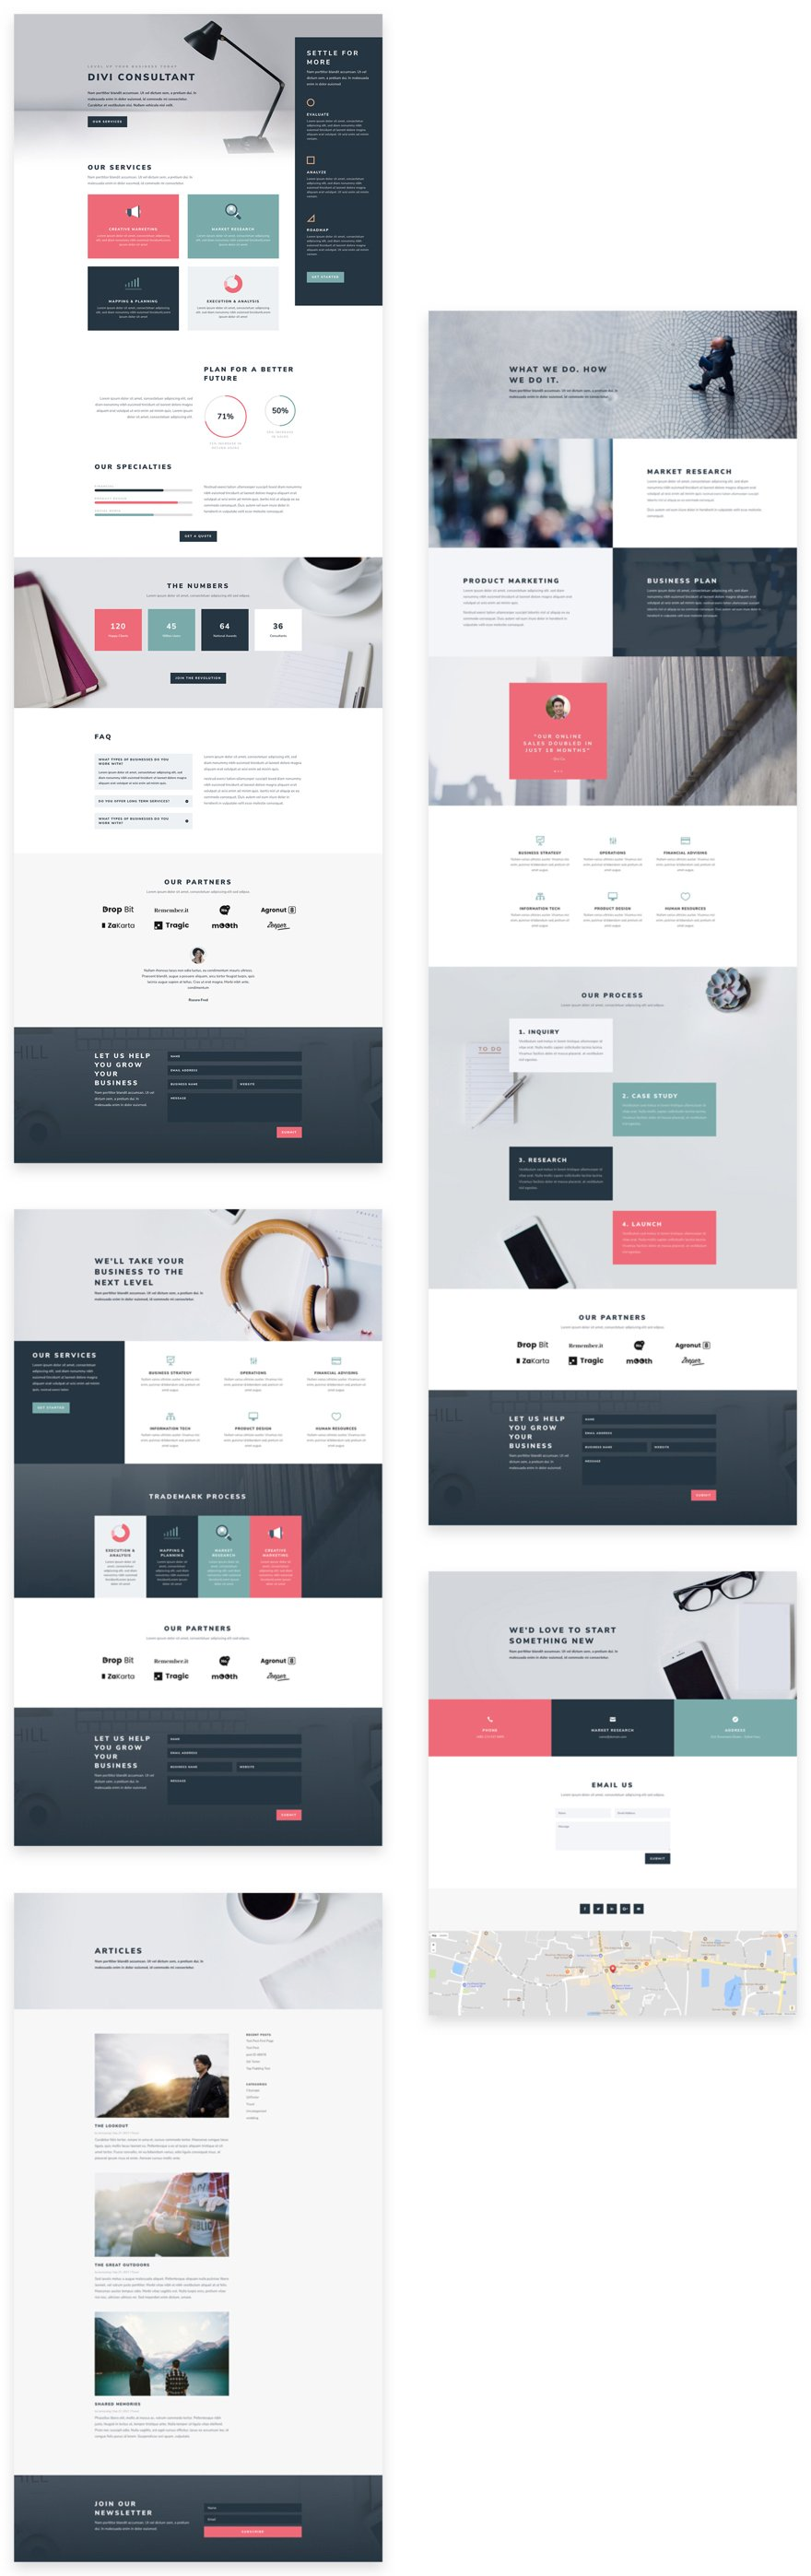 consultant-layout-pack-grid